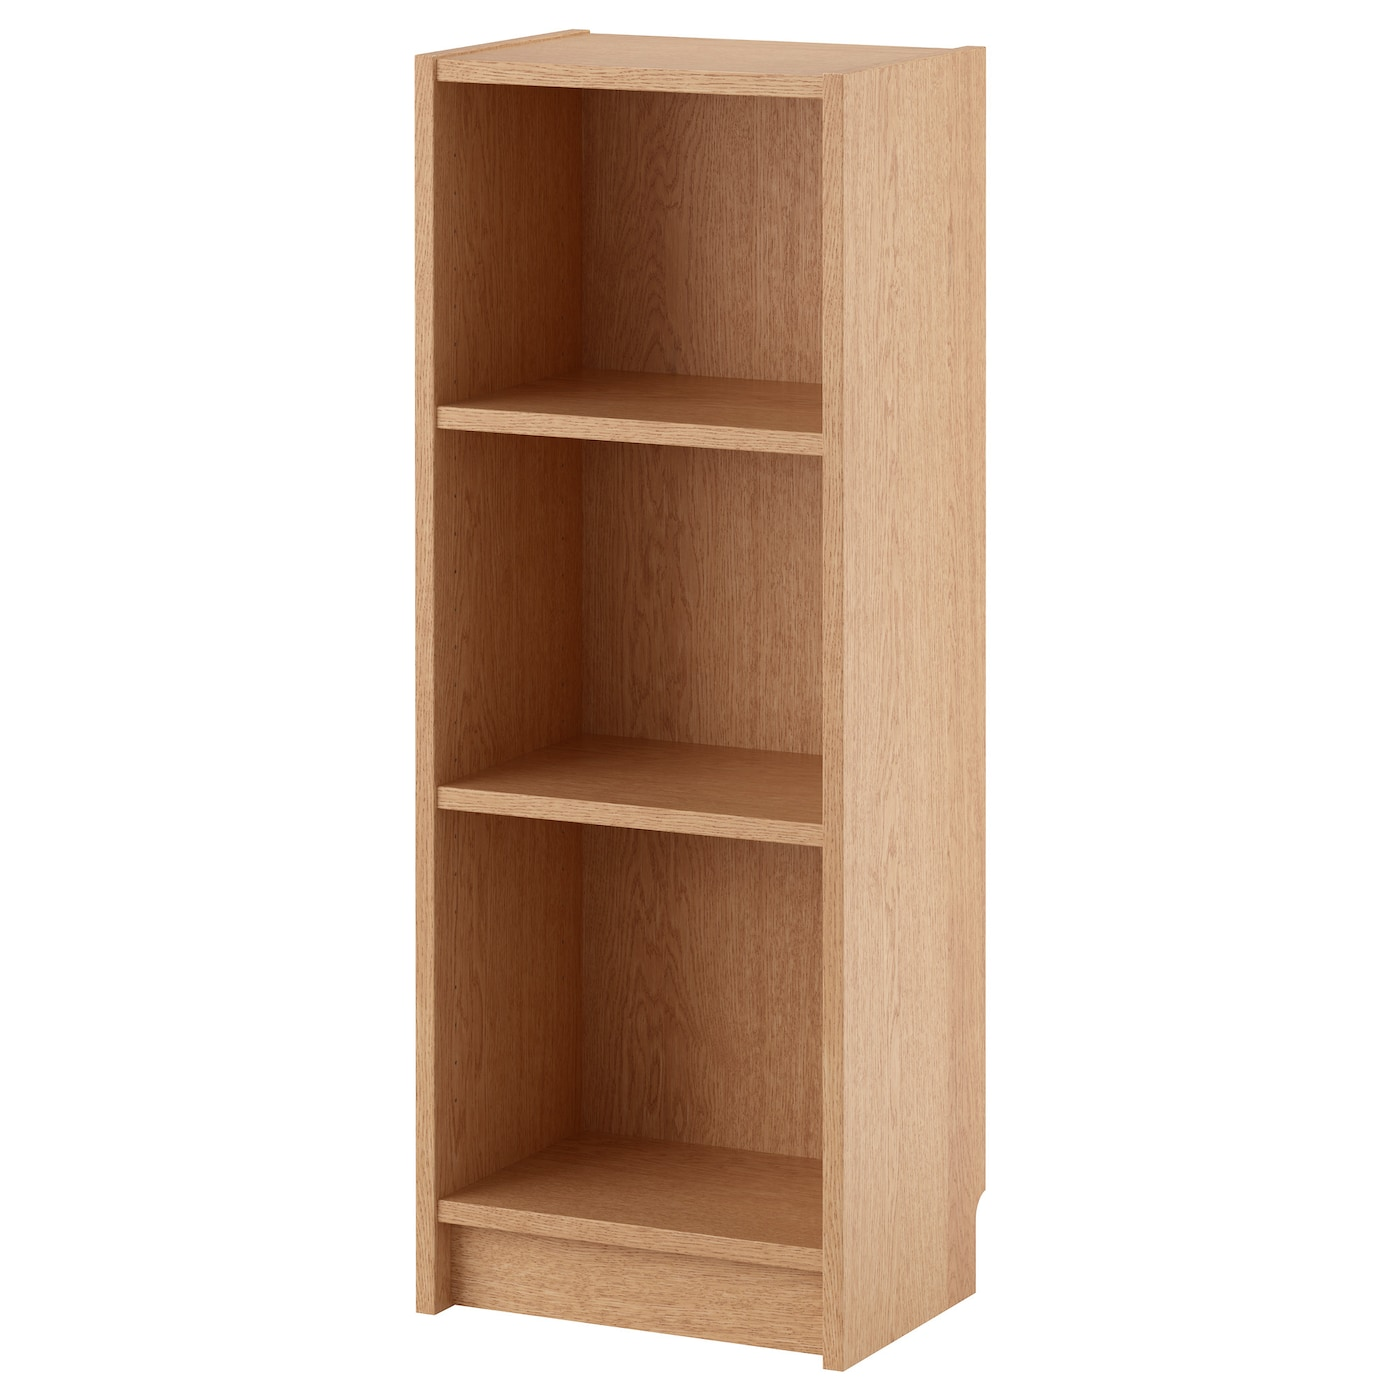 place ikea ins to make how bookcases taste my of built bookcase billy builtins